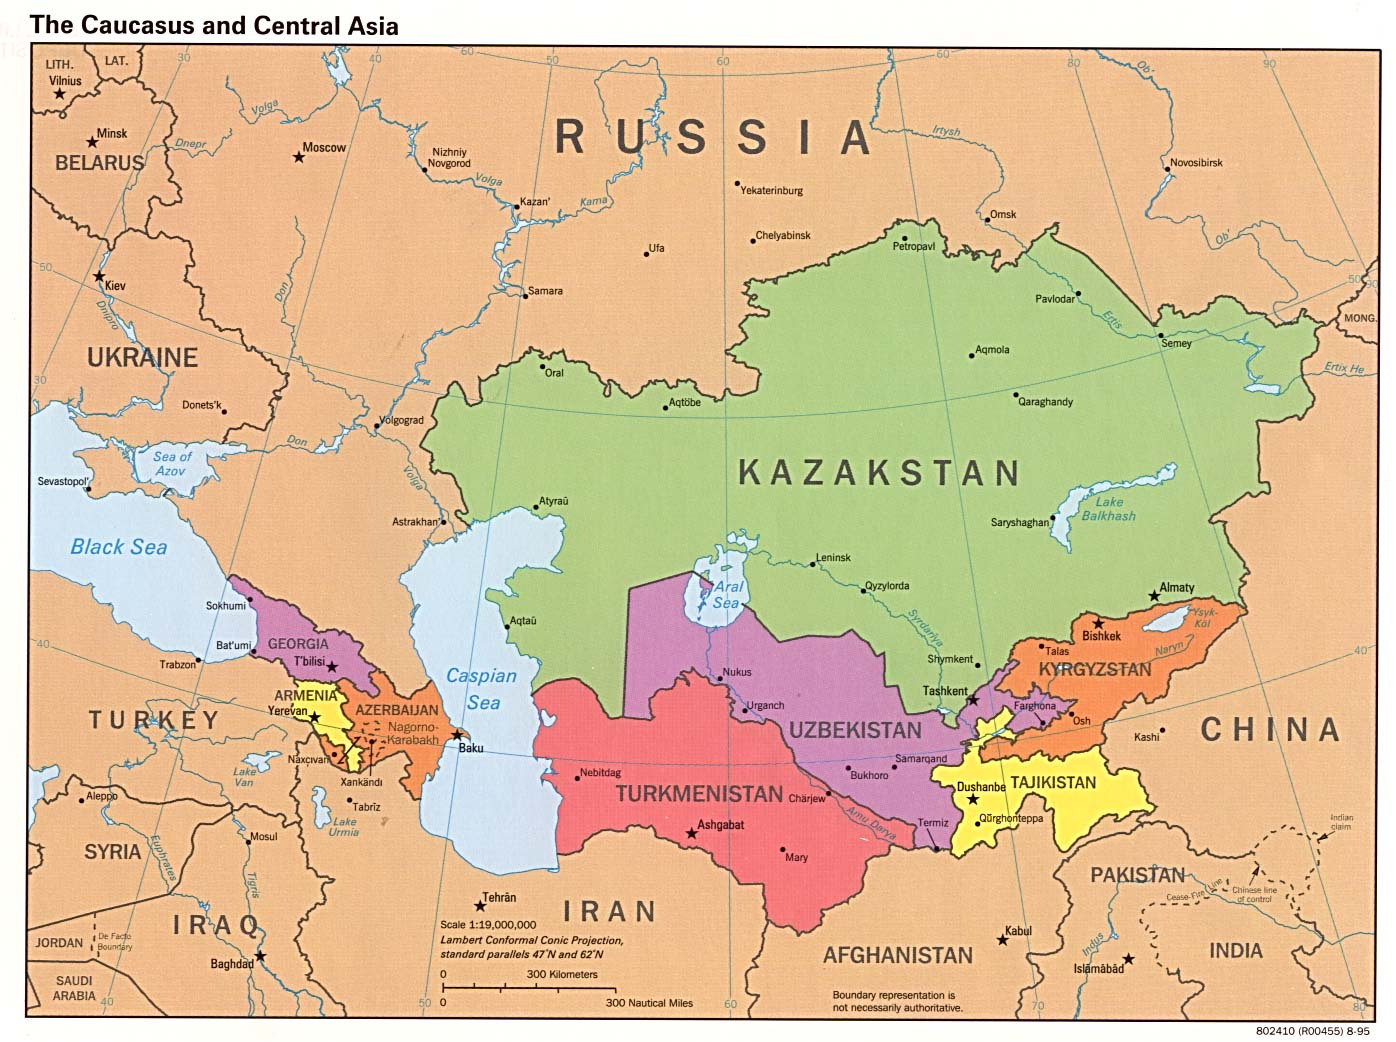 File:The Caucasus and Central Asia - Political Map.jpg - Wikimedia ...